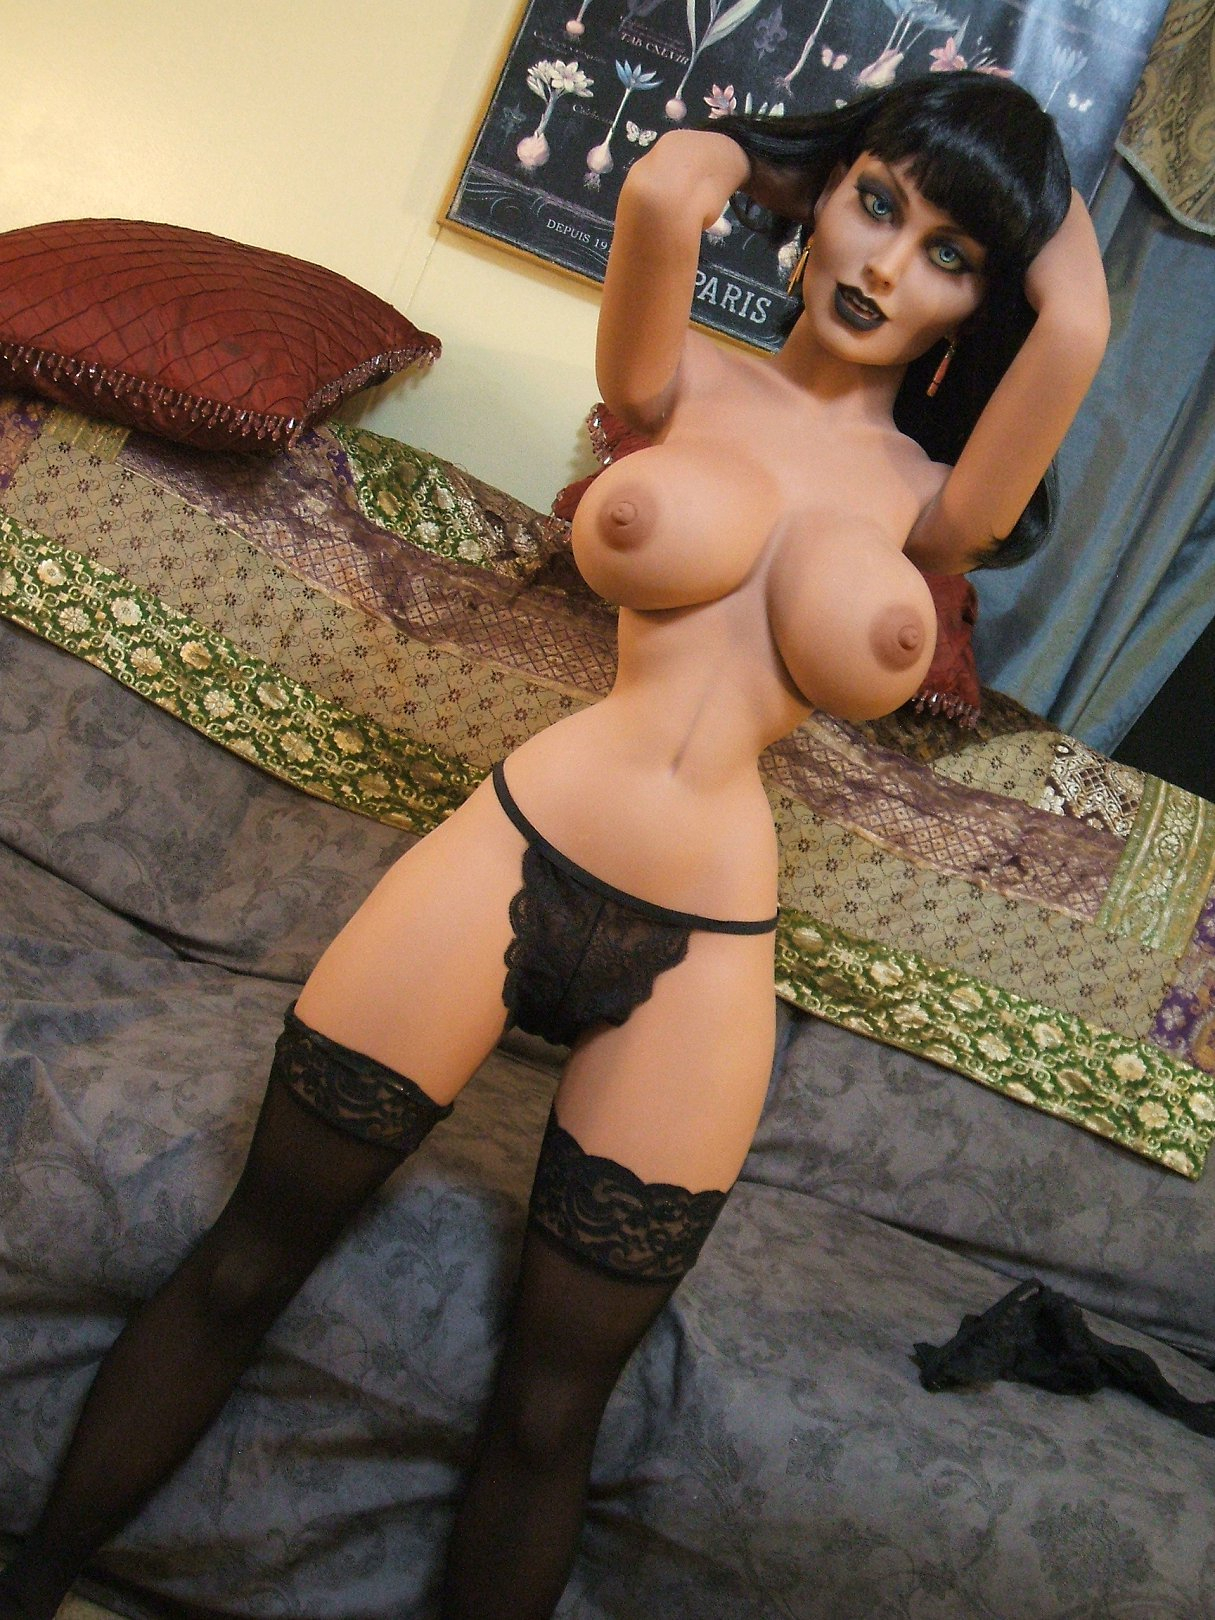 joanna 148cm black hair fantasy medium tits tpe yl anime small sex doll(2)